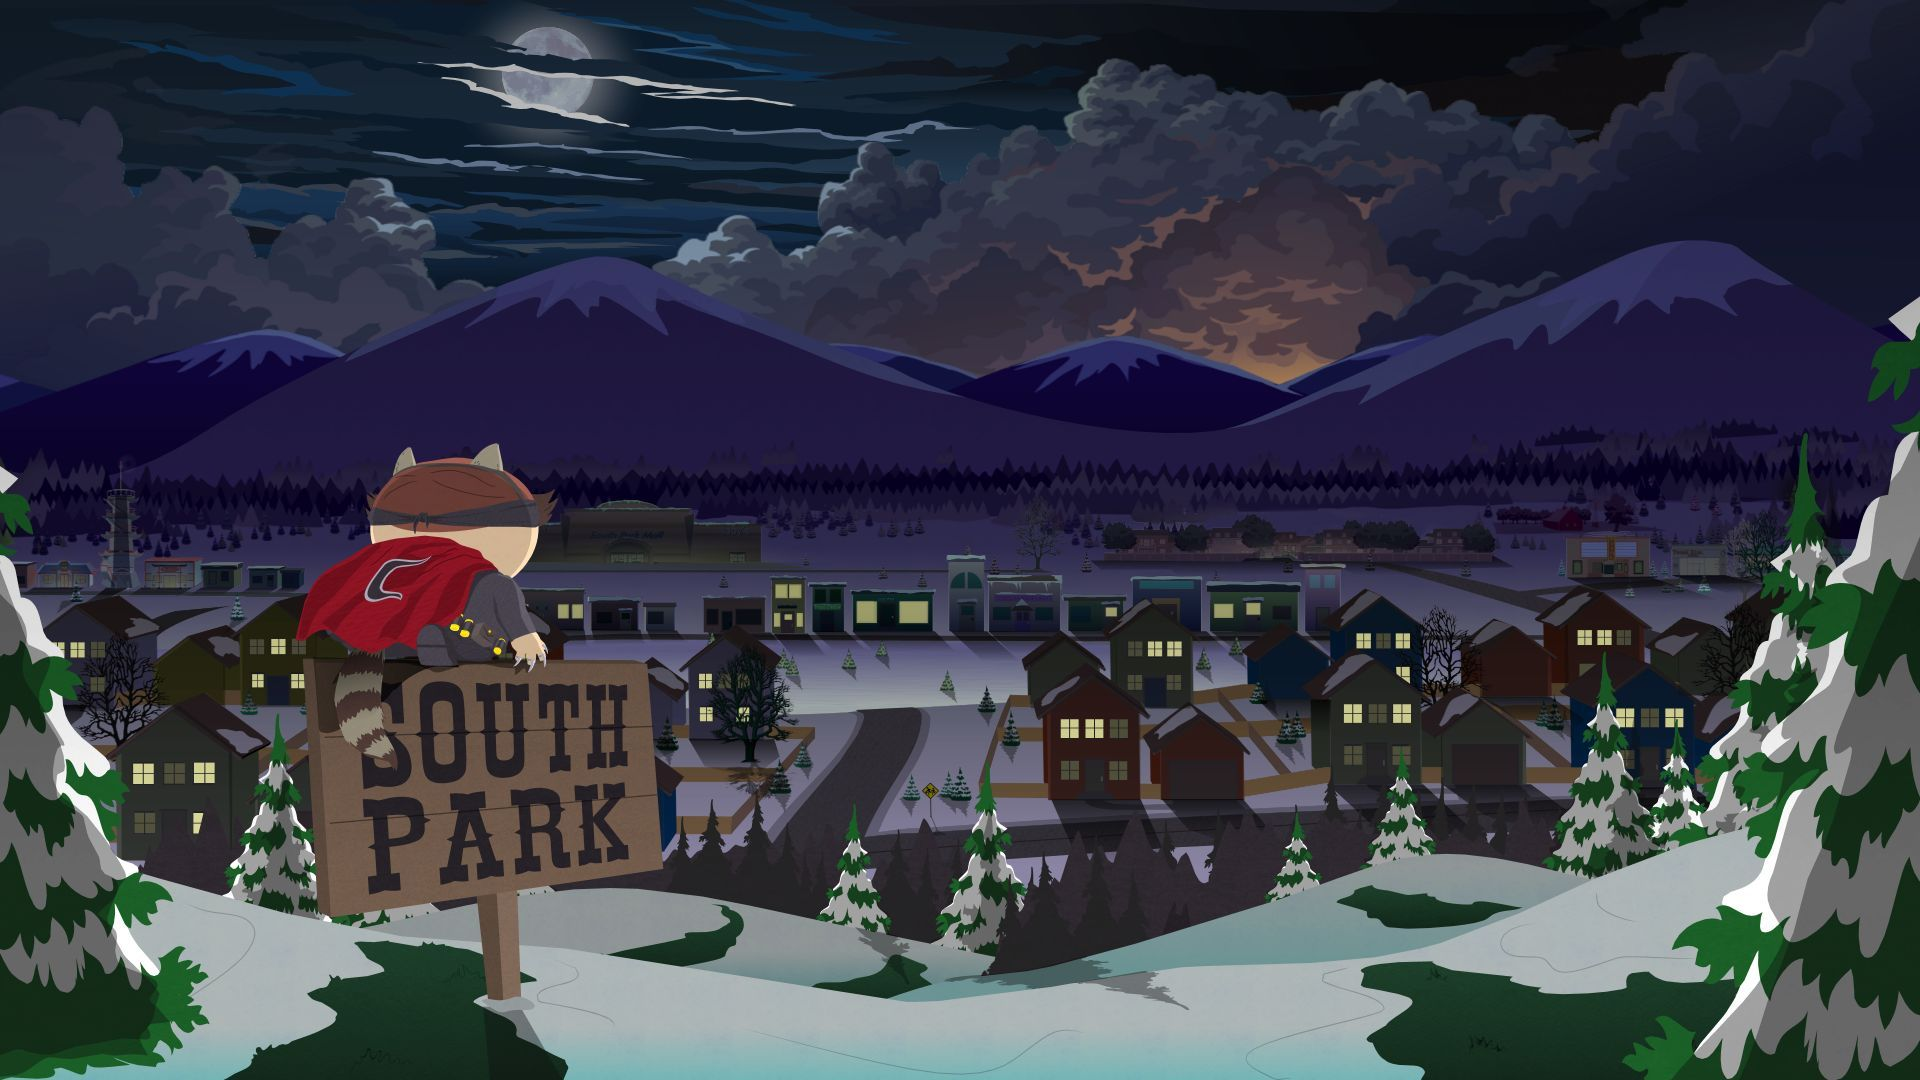 South Park: The Fractured But Whole Should Win an E3 Award For Best Game Title